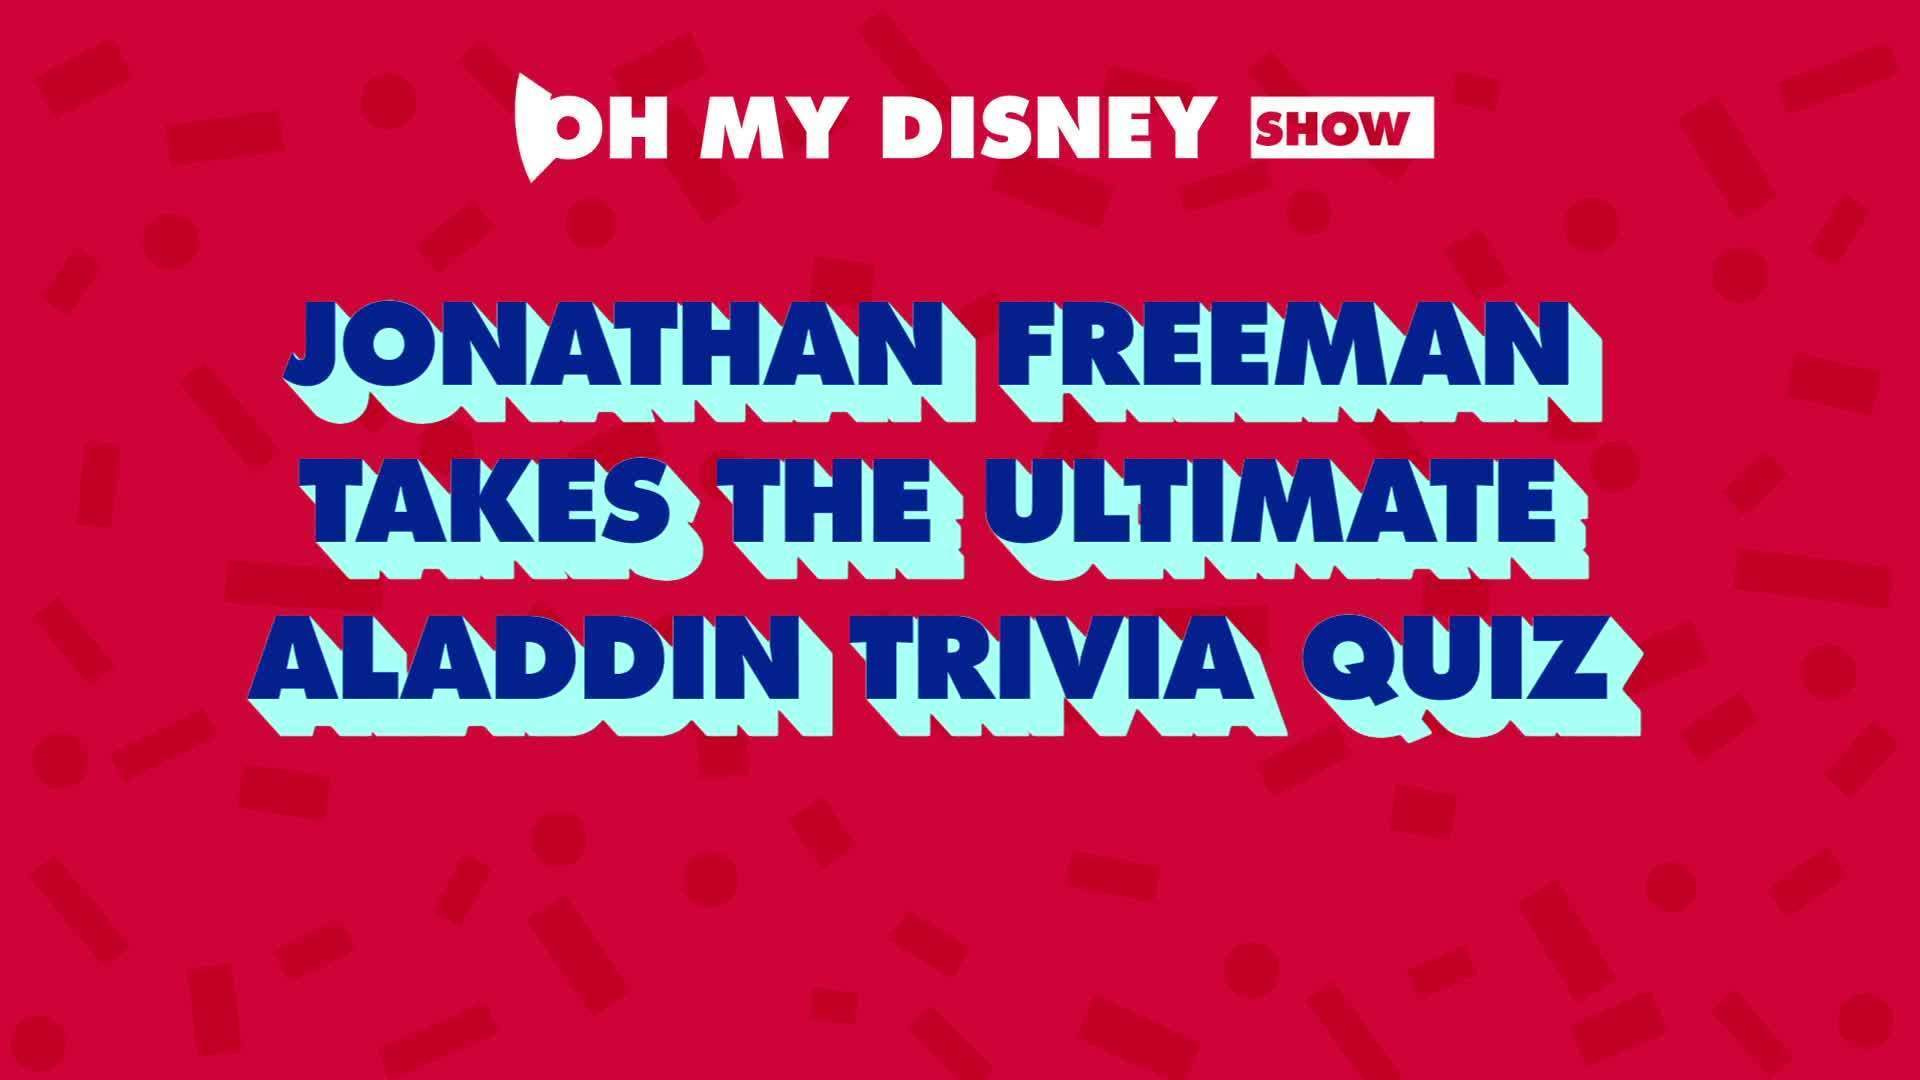 Jonathan Freeman Takes an Oh My Disney Quiz | Oh My Disney Show